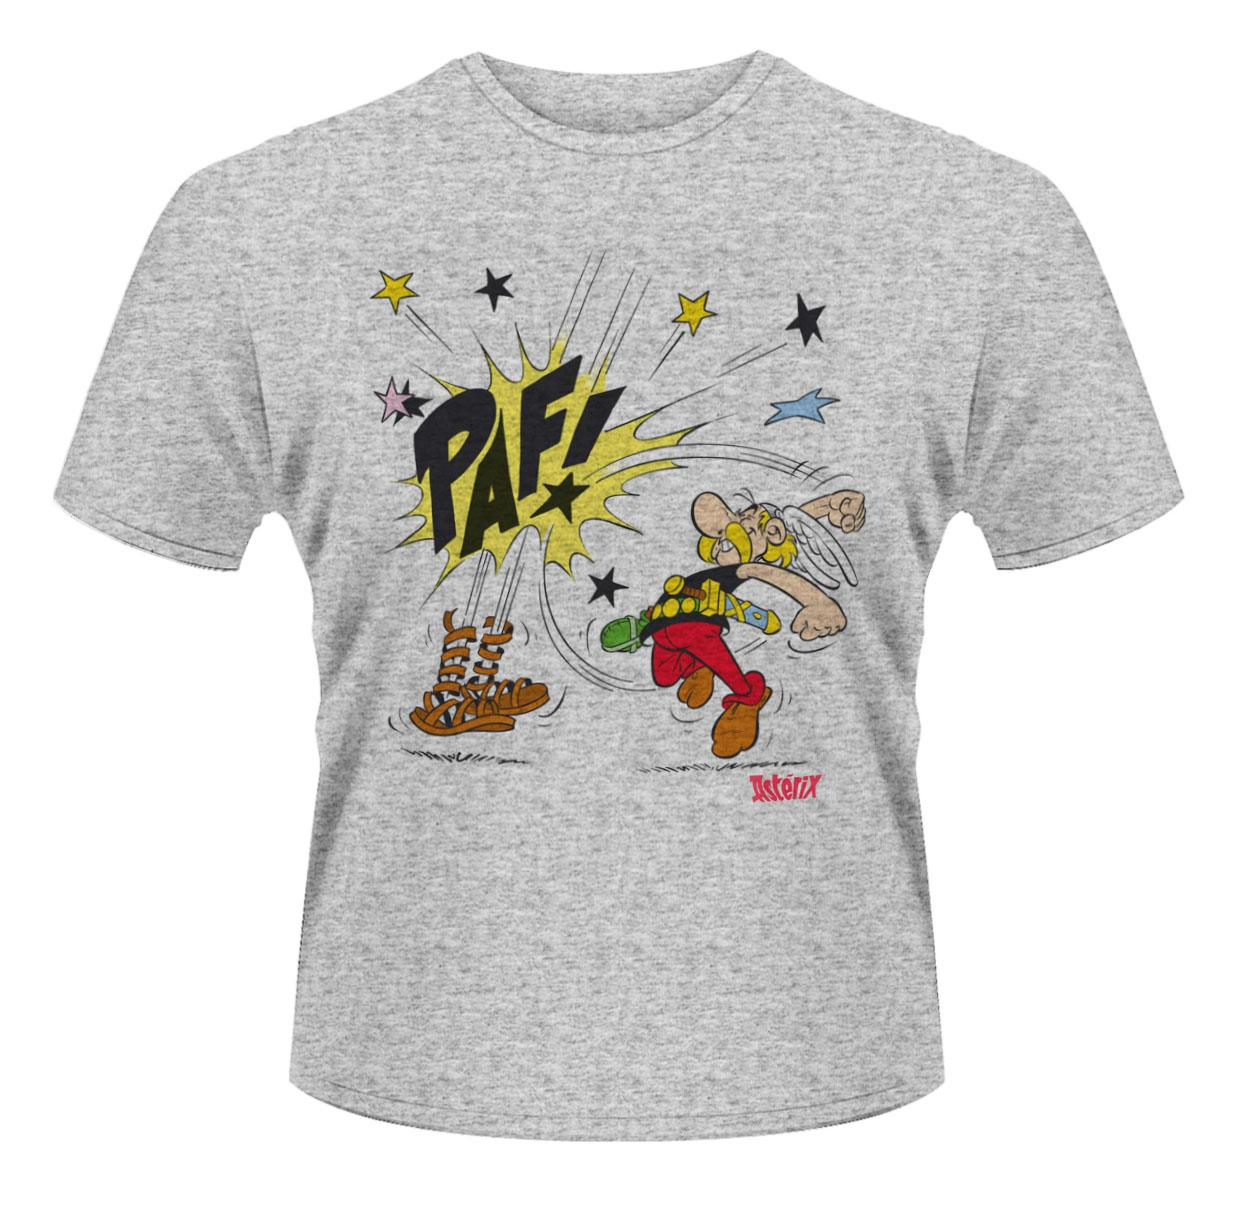 Asterix T-Shirt Punch Size M